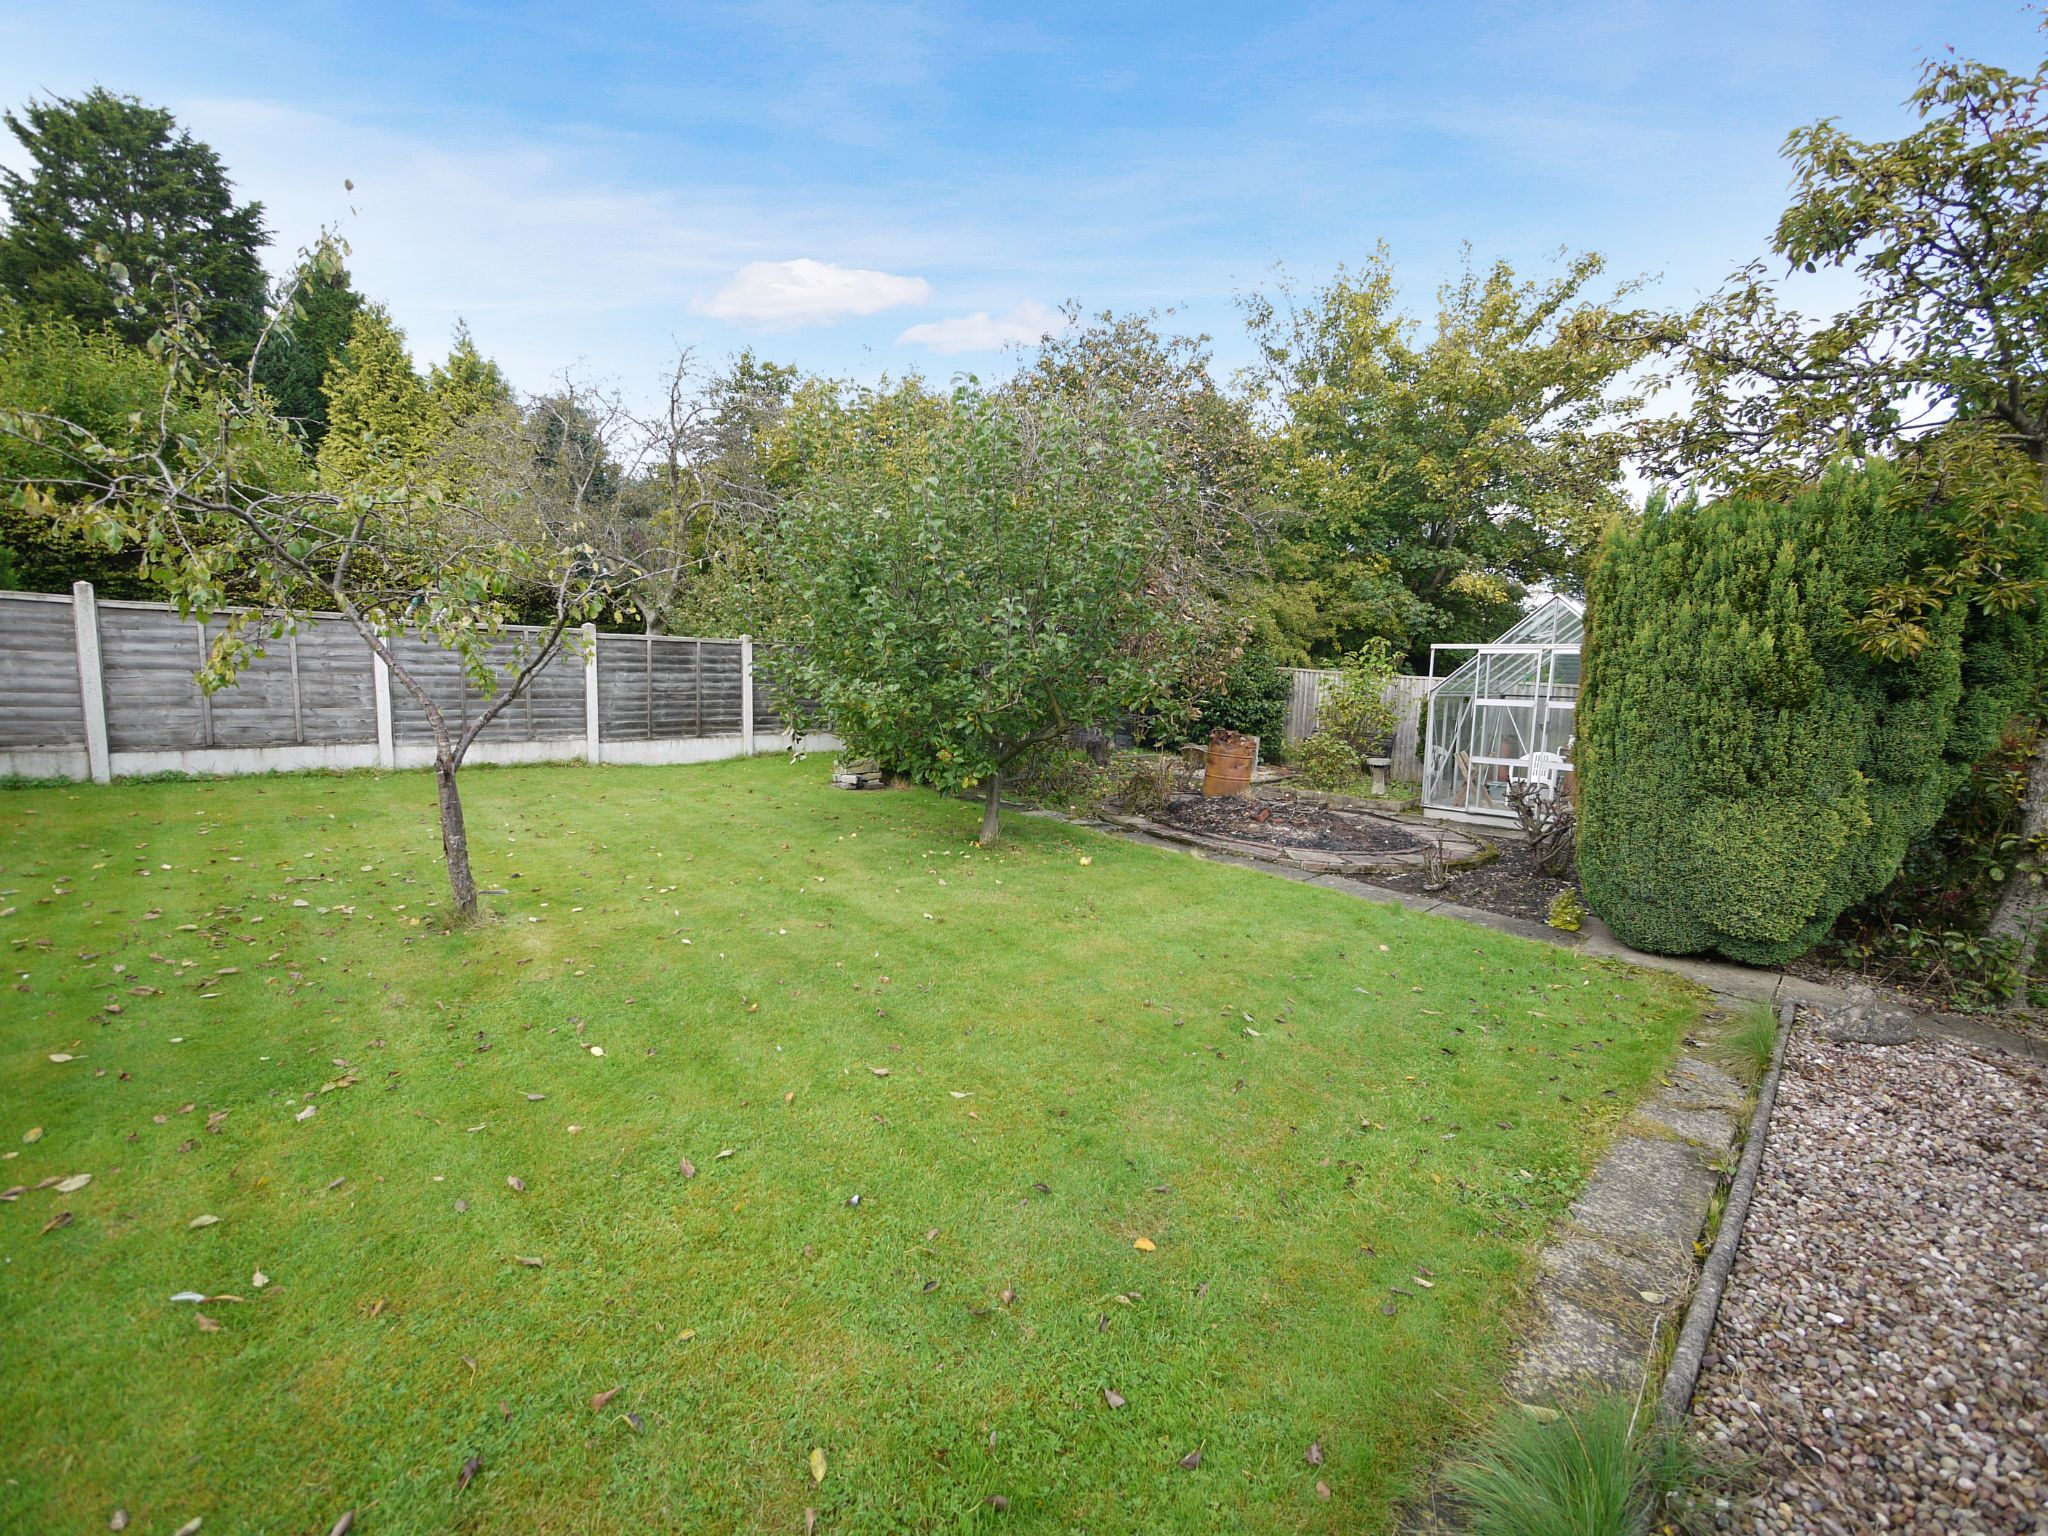 3 bedroom detached house SSTC in Brighouse - Garden 2.